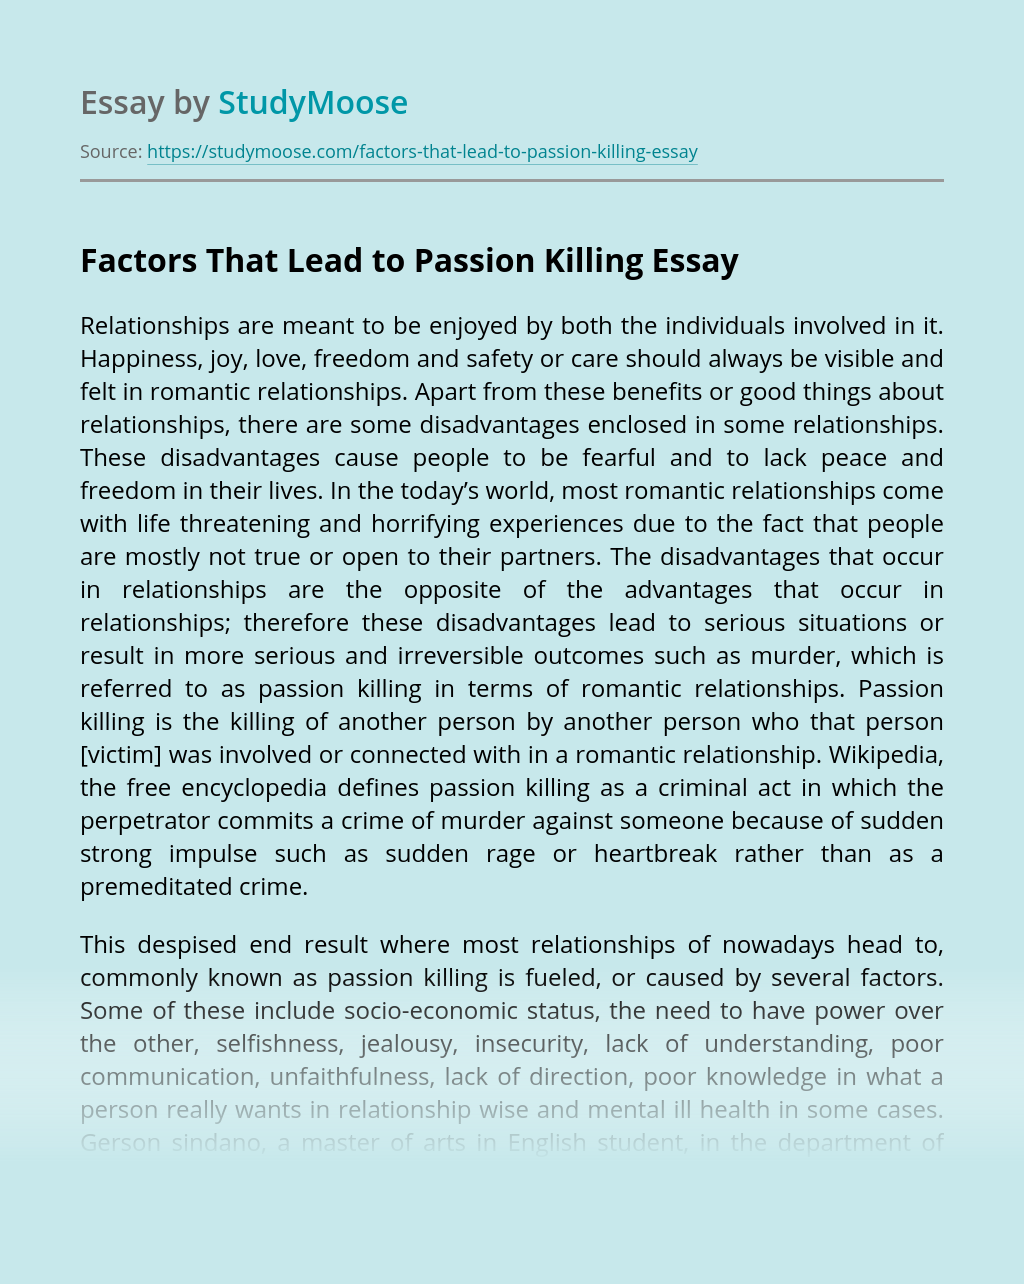 Factors That Lead to Passion Killing